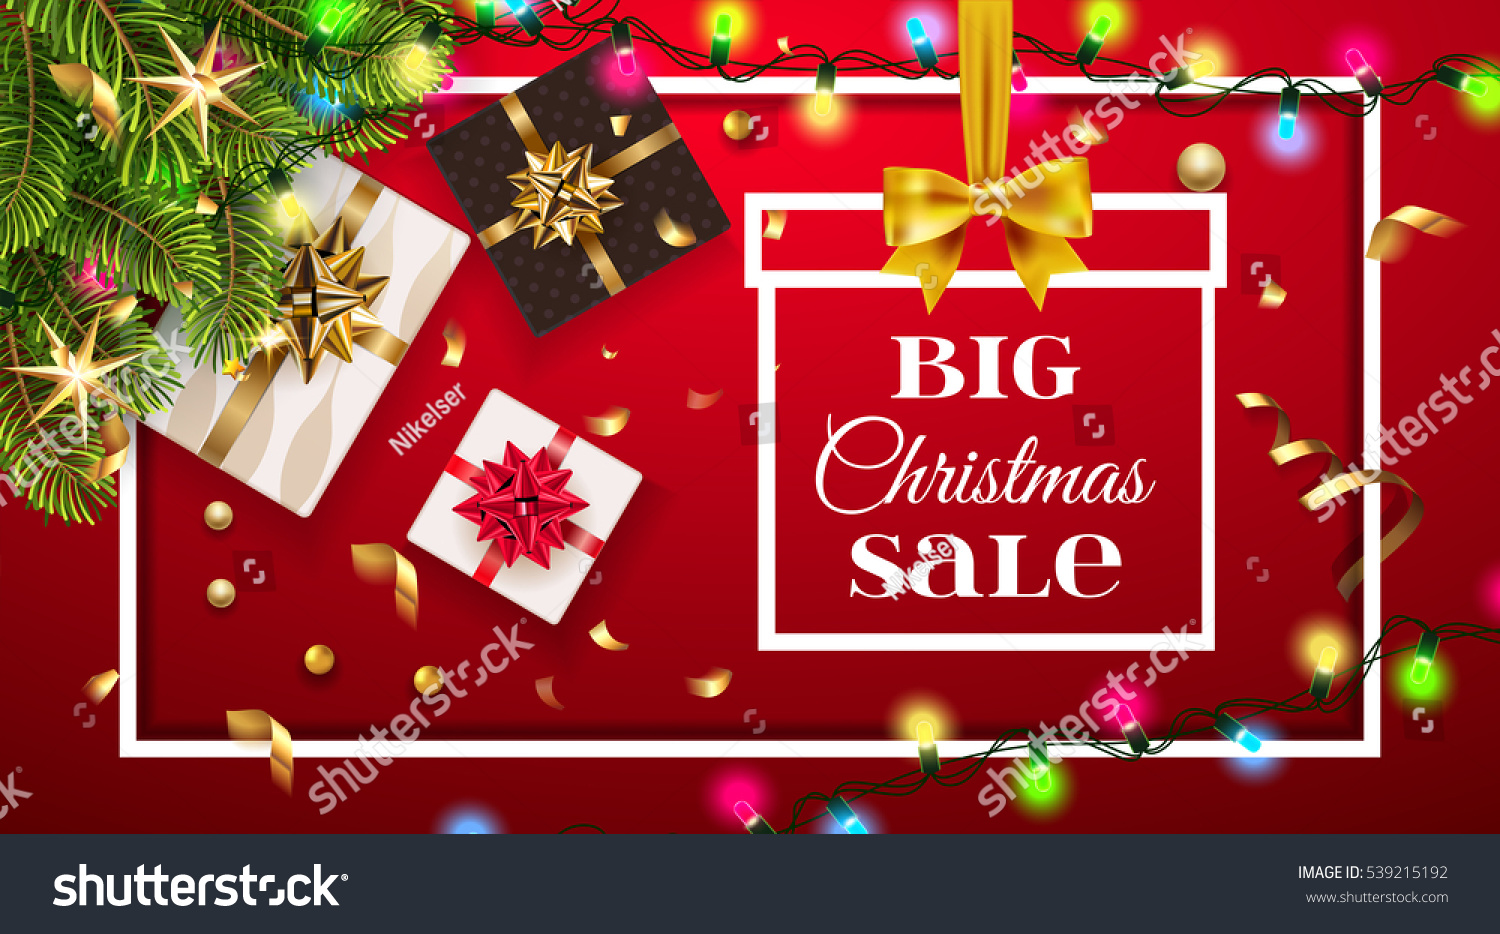 Big Christmas Sale Background Golden Gifts Stock Vector (Royalty ...